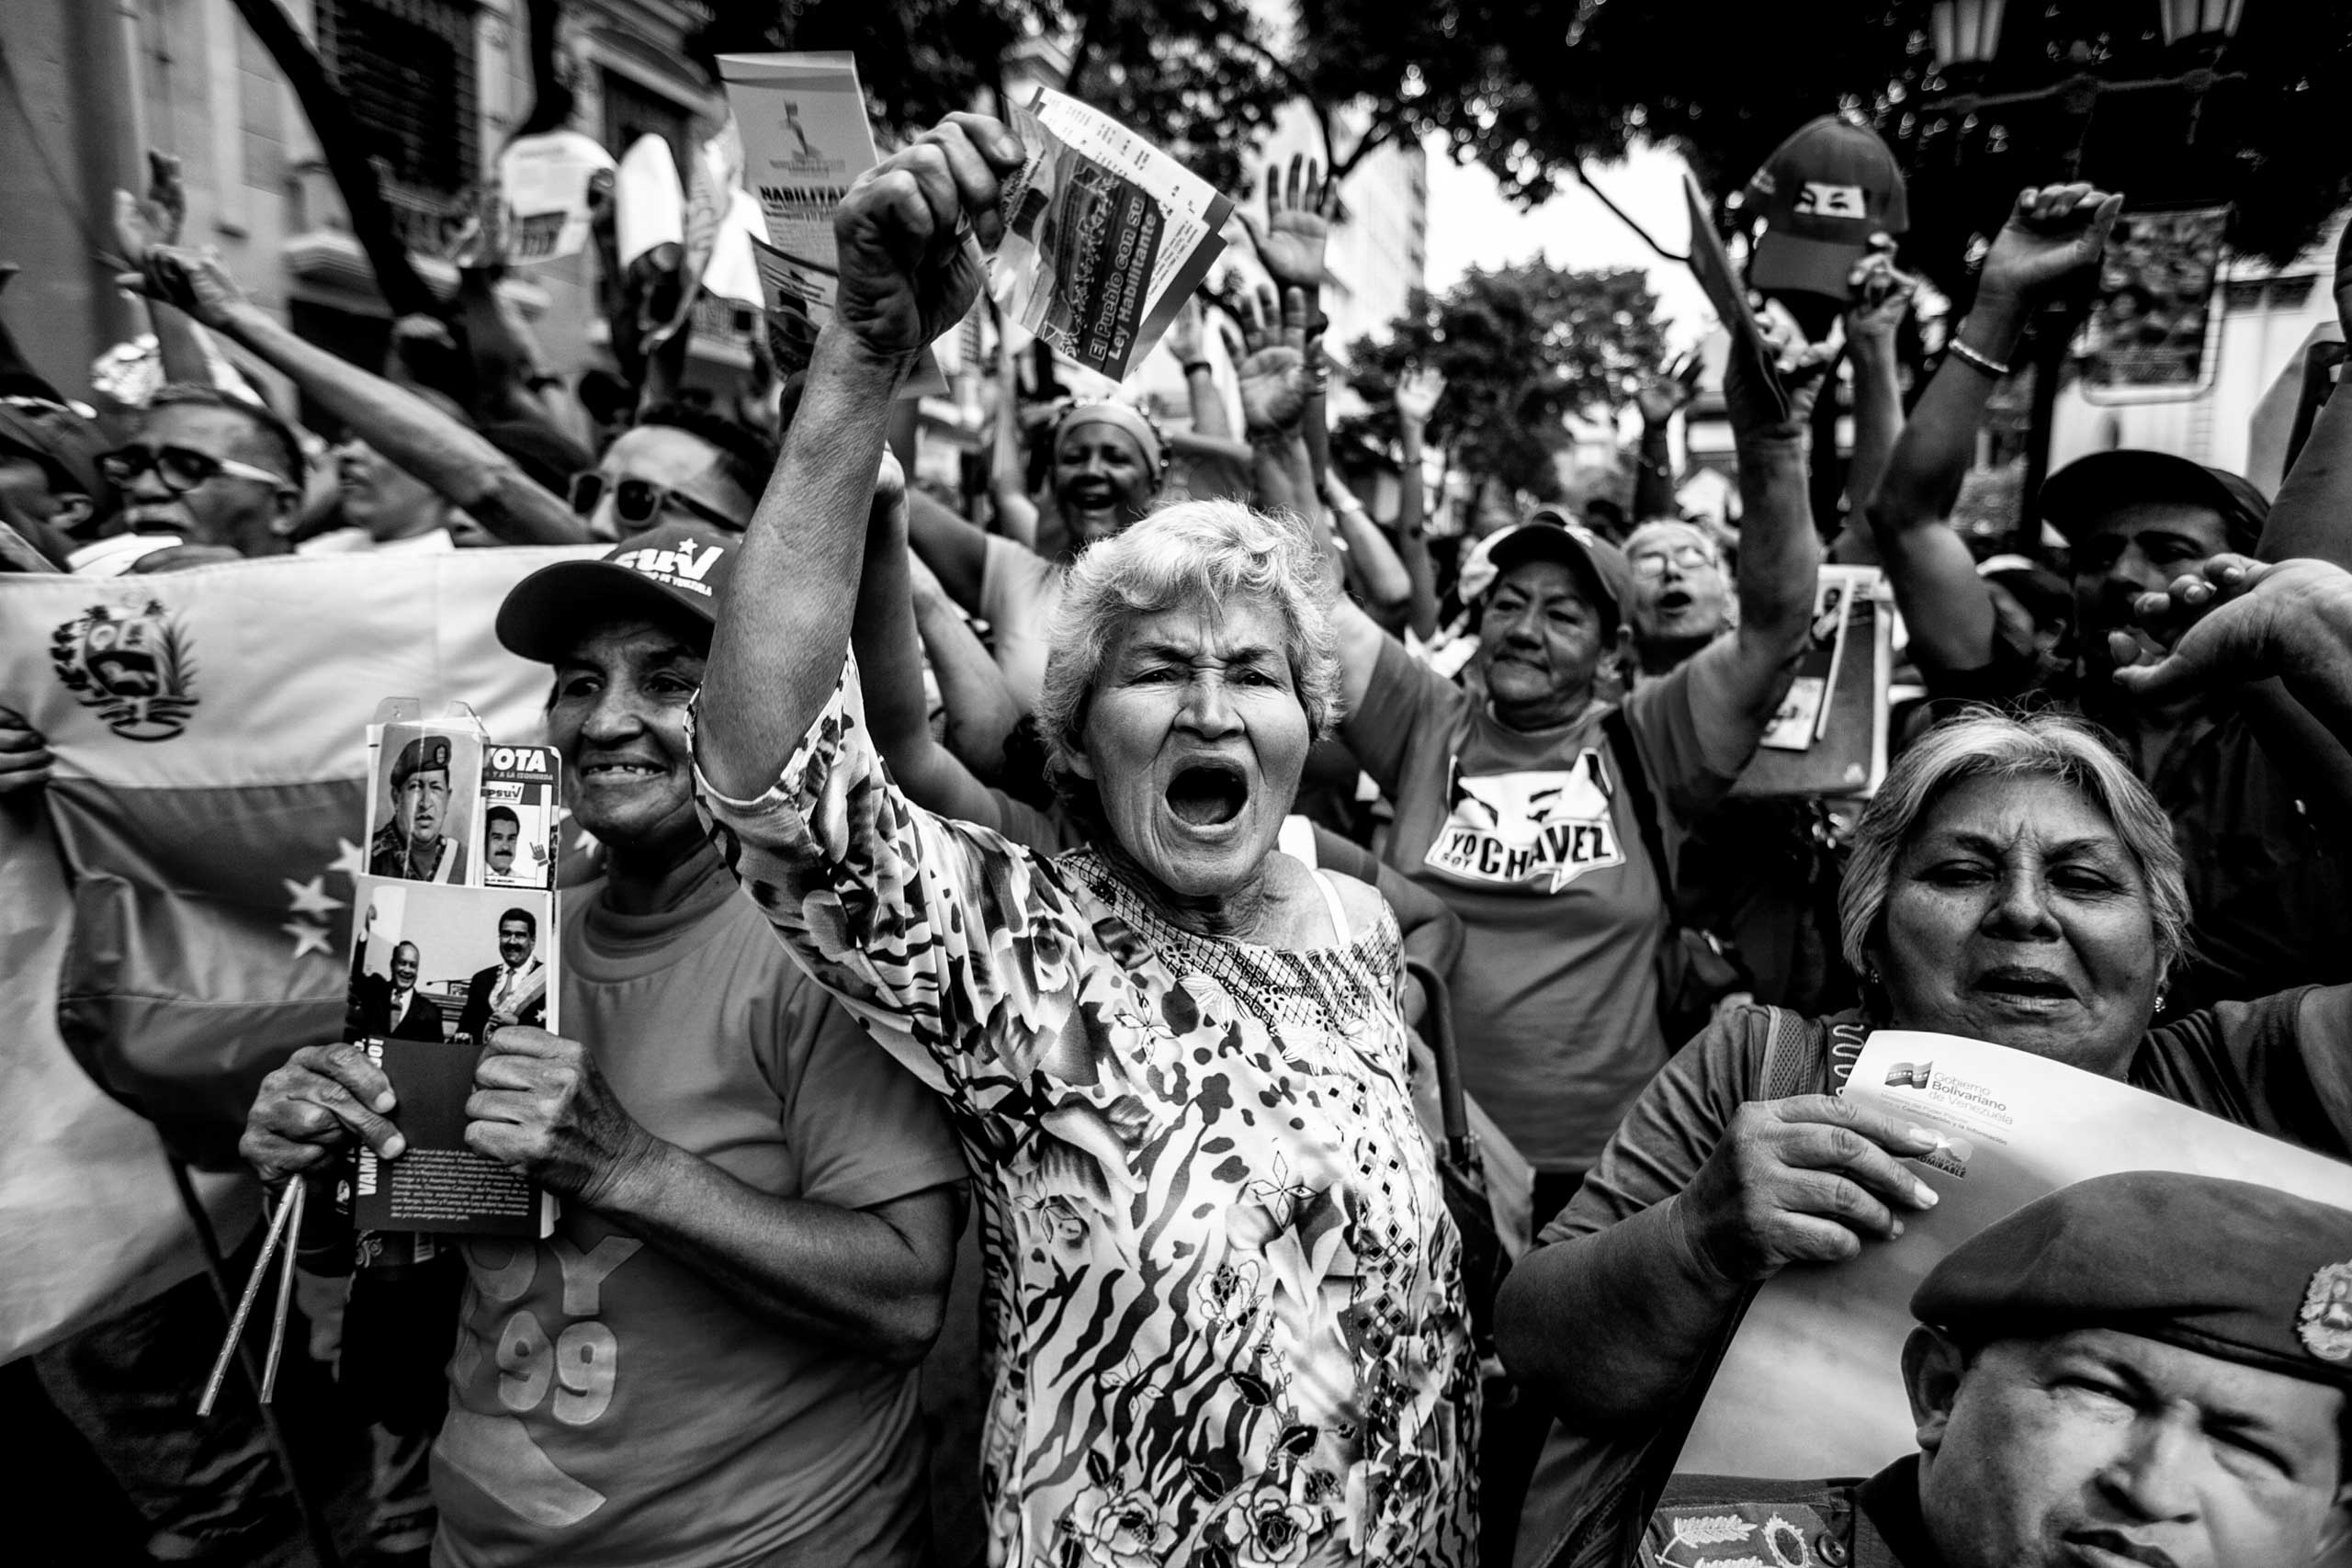 Women shout slogans against Venezuela's opposition during a political rally in front of the national parliament. Caracas, November 2013.